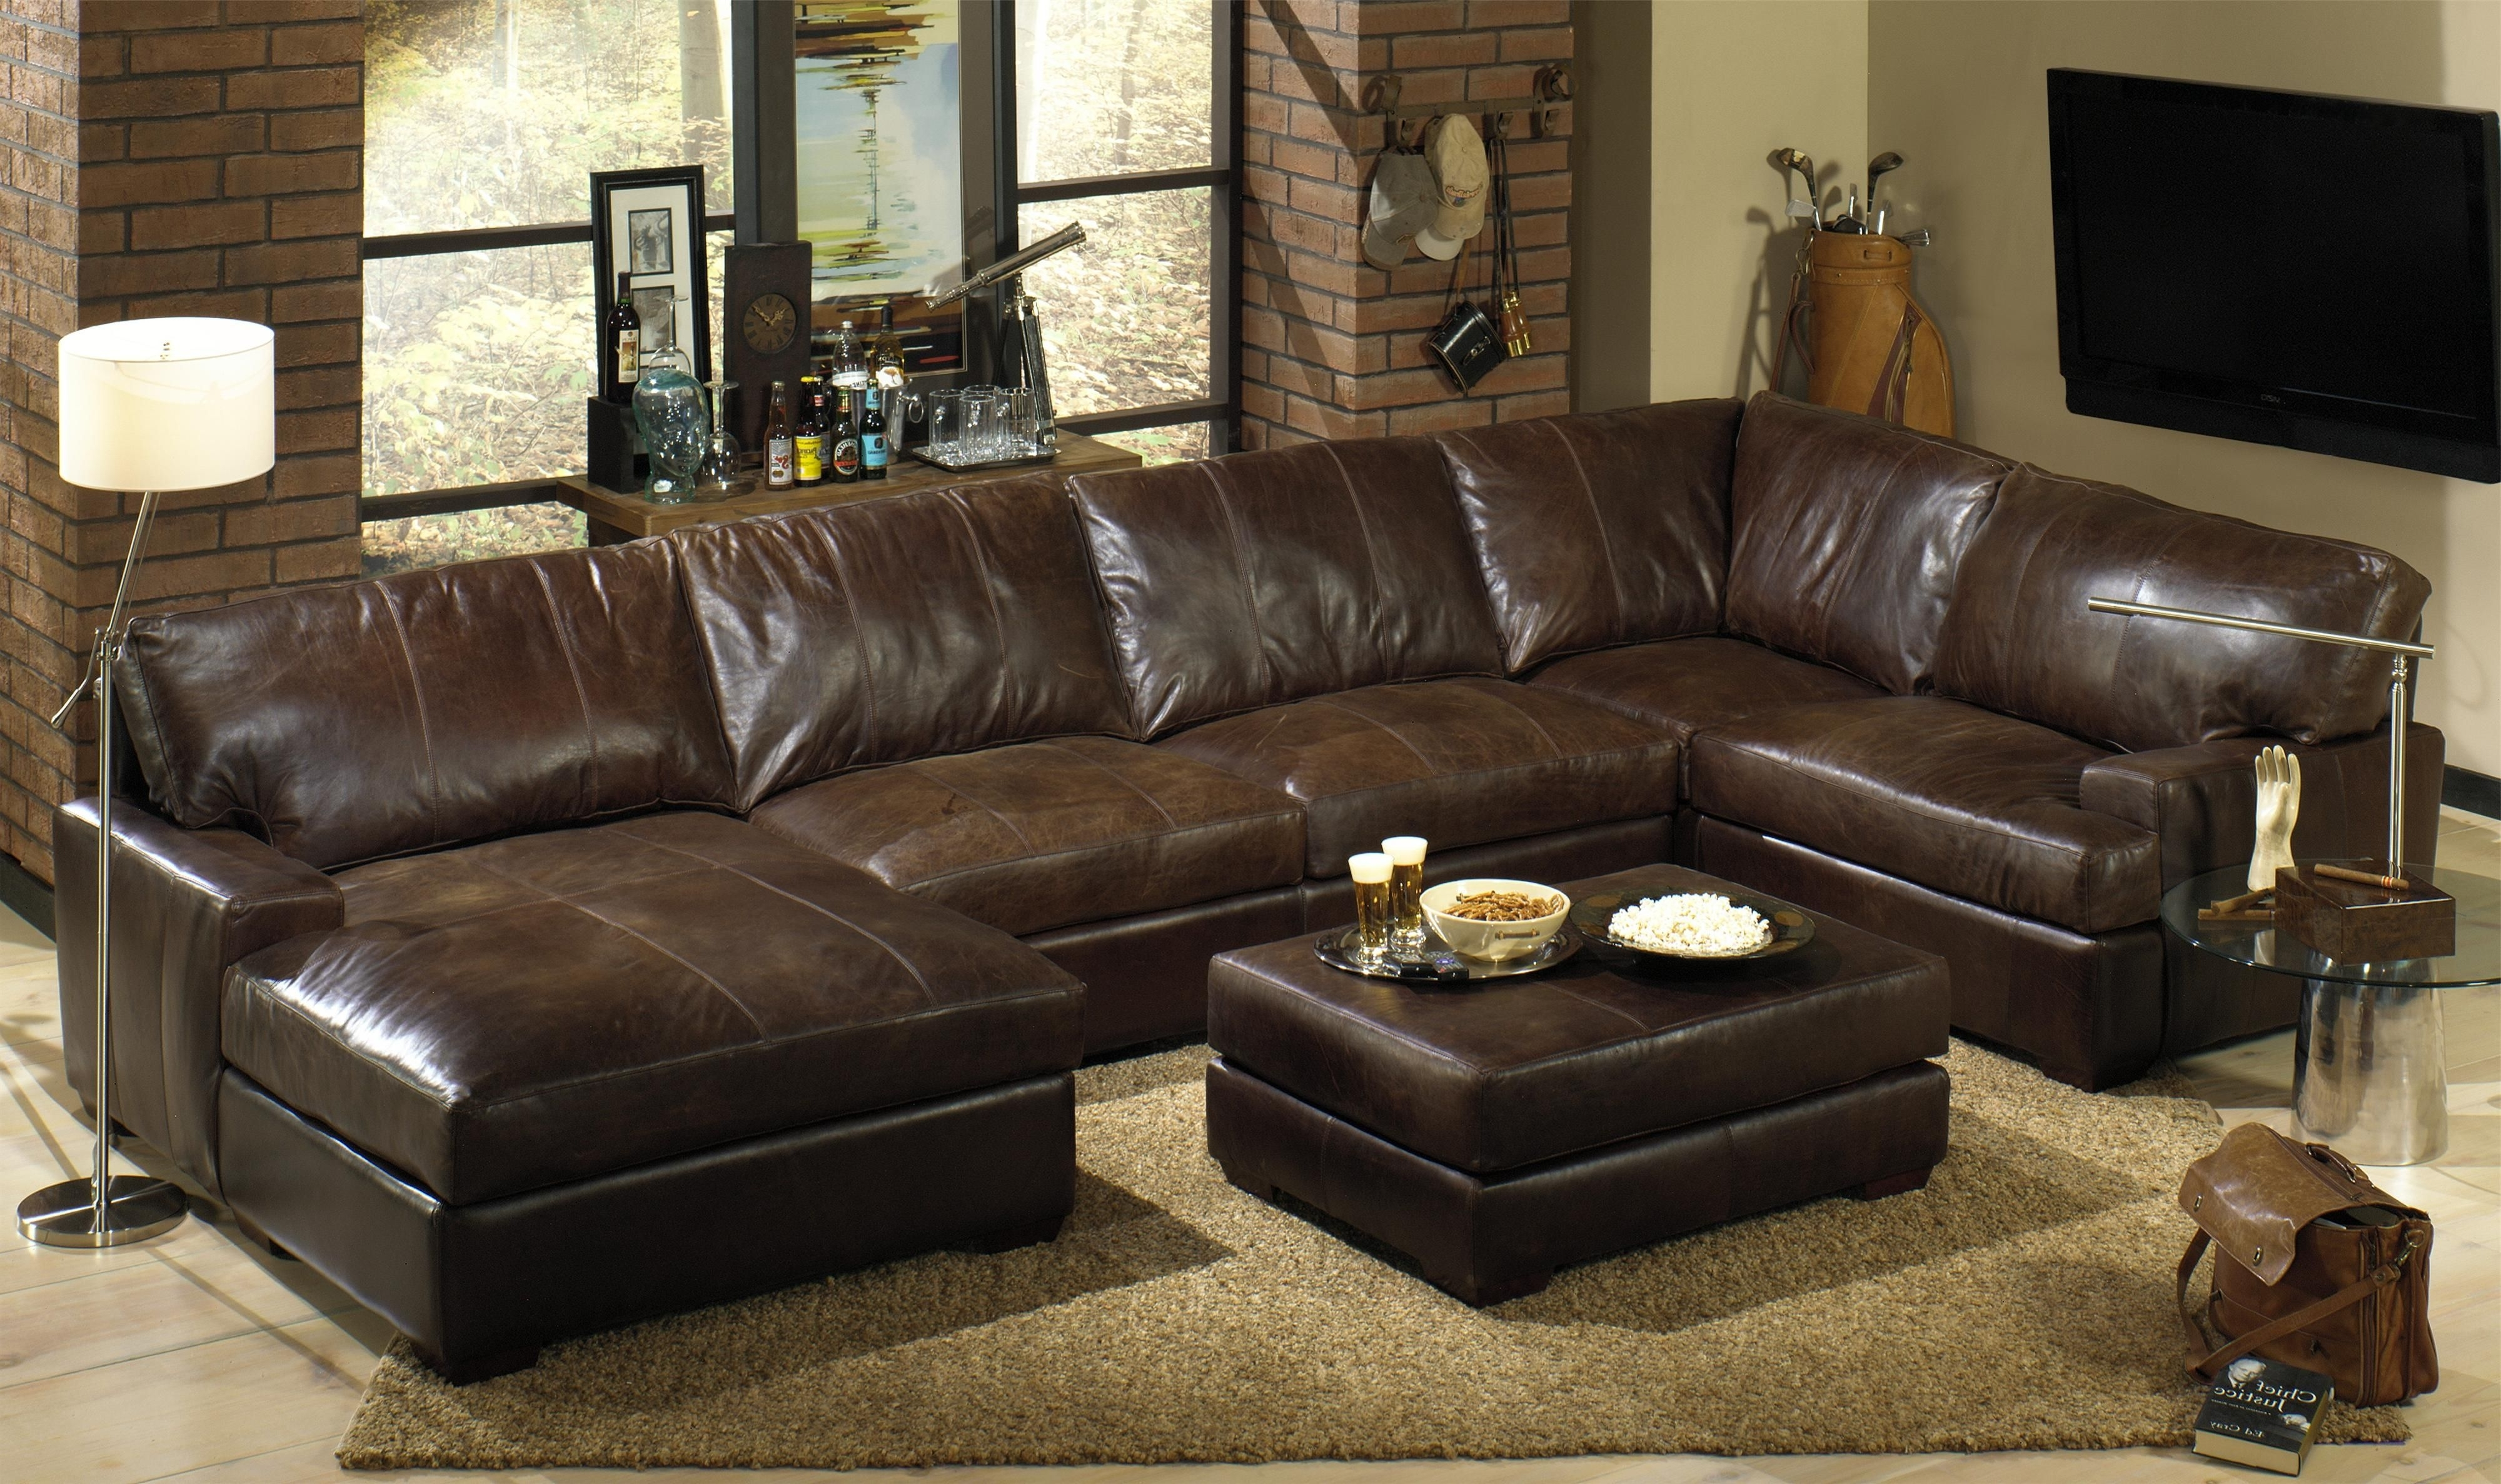 Comfortable Sectional Couches For Versatile Home Furniture Ideas In Fashionable Sofas With Chaise And Ottoman (View 3 of 20)